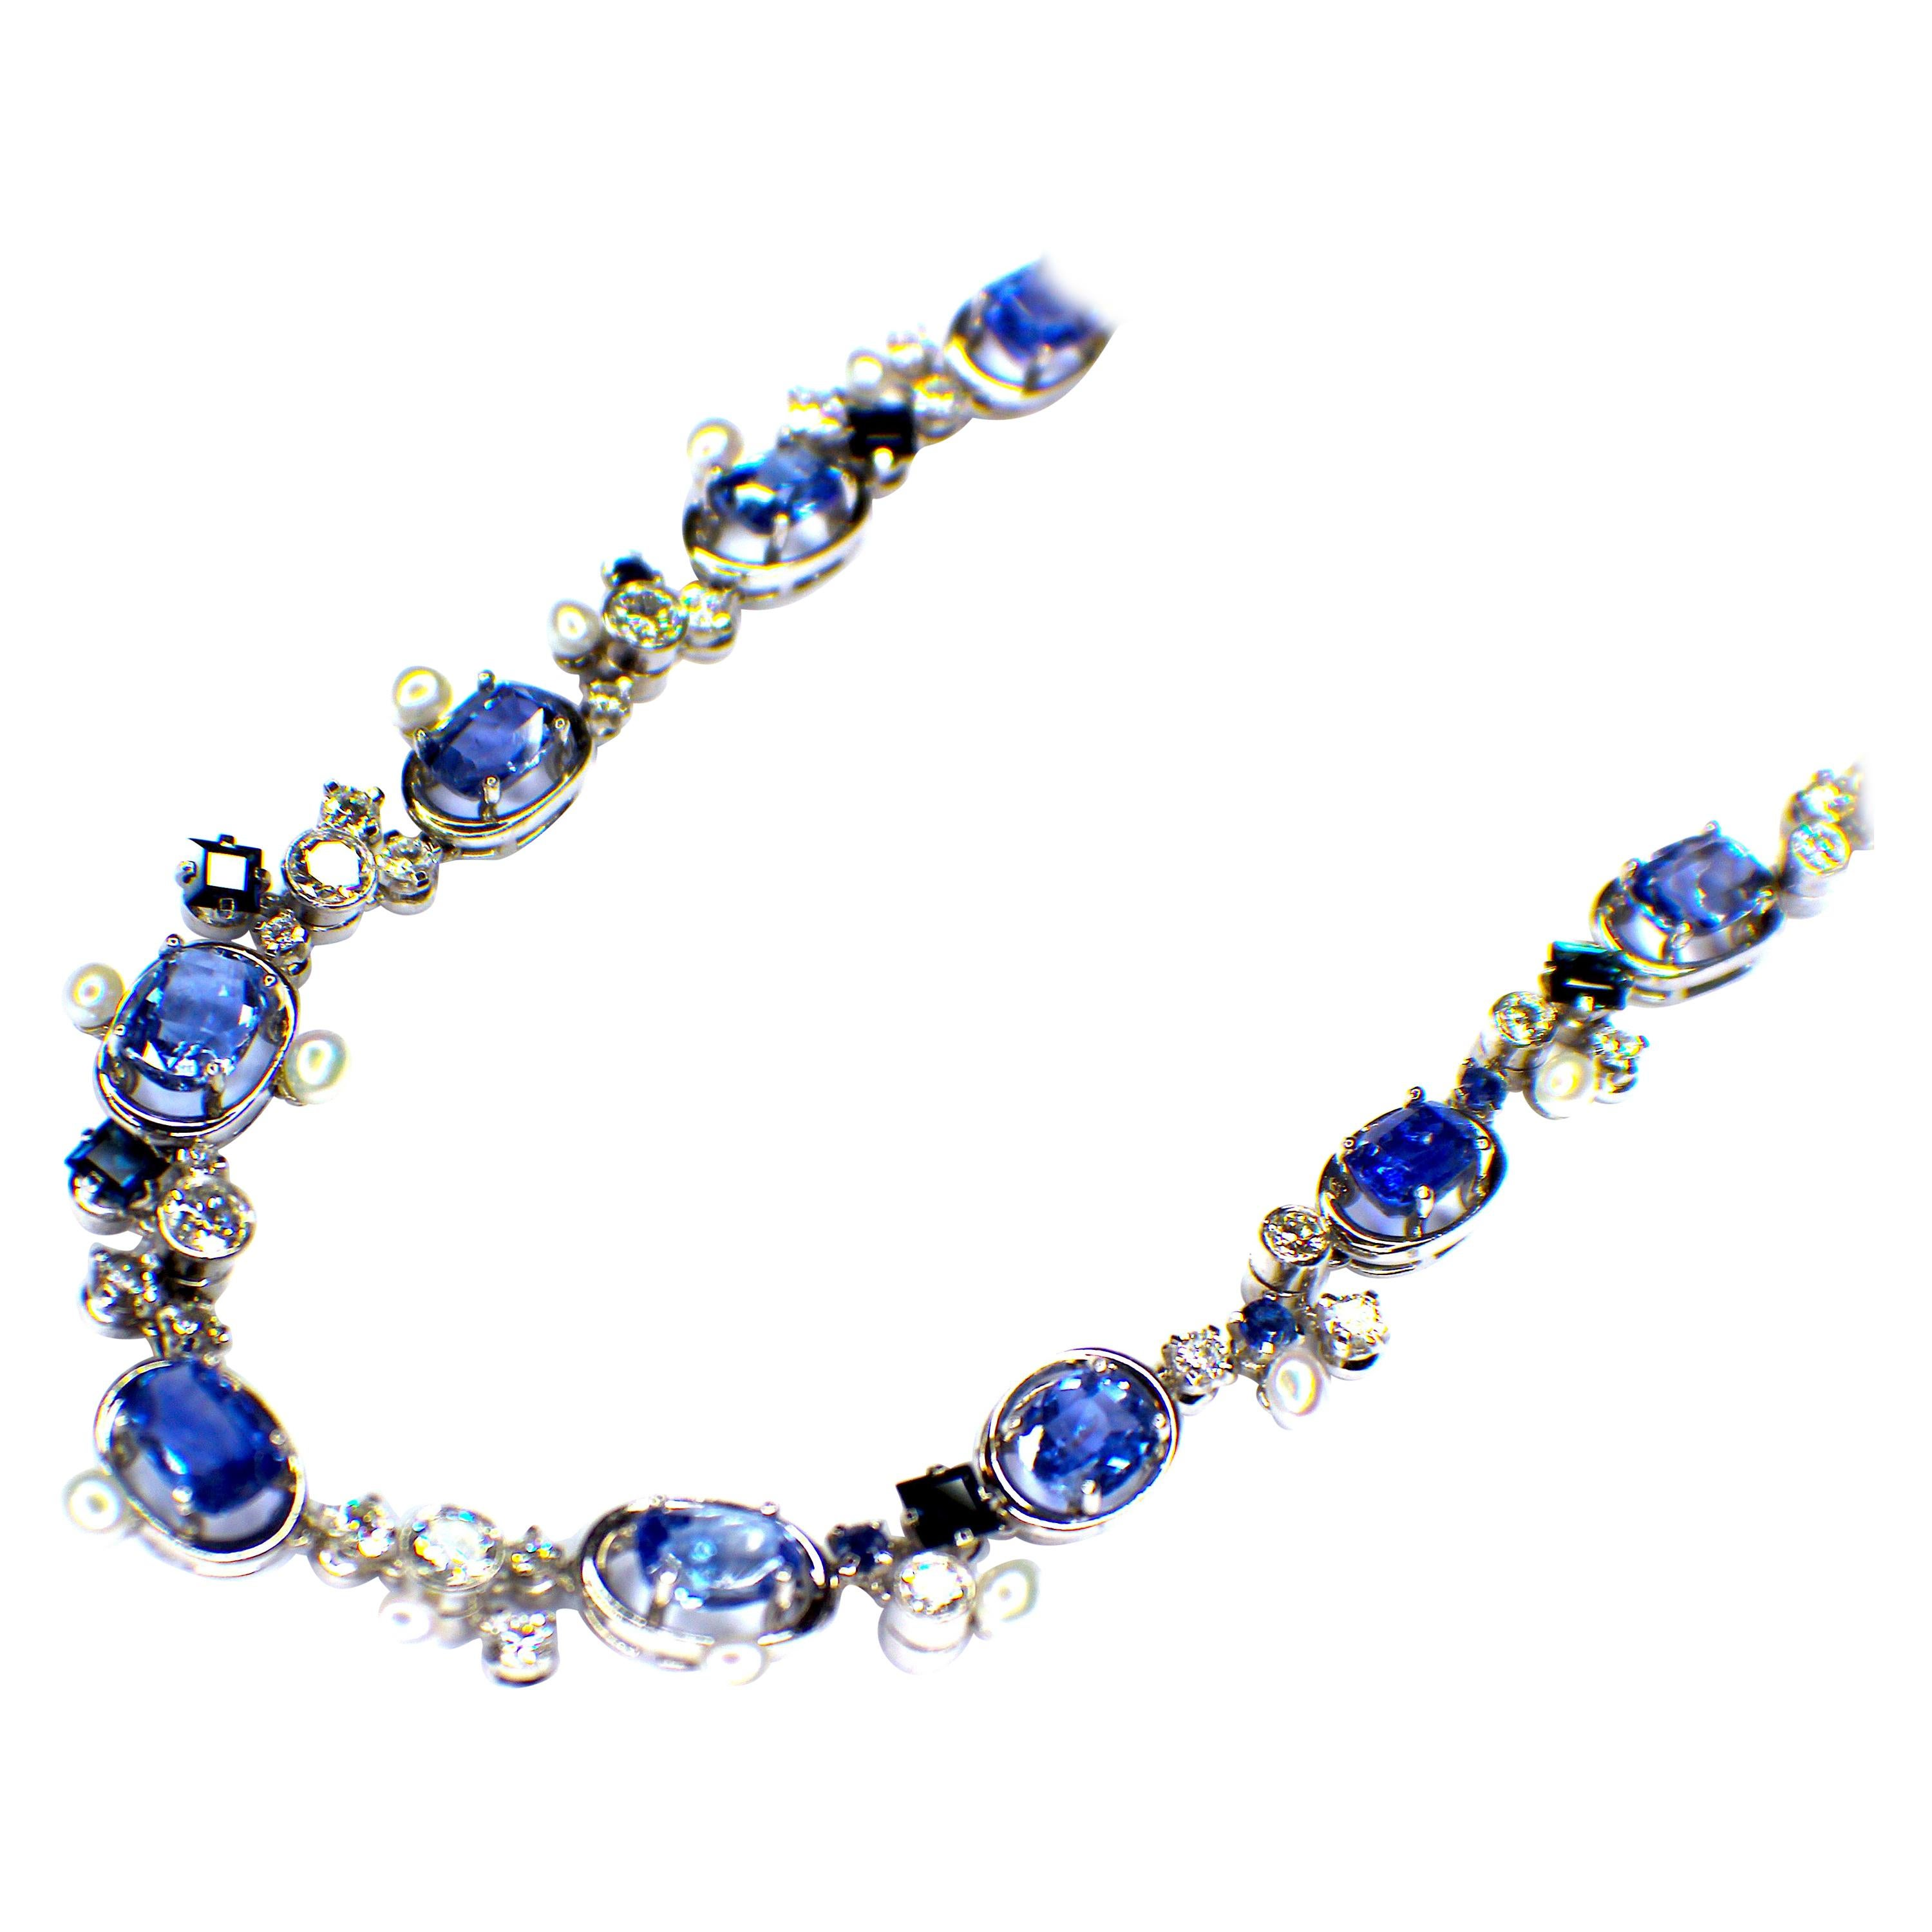 GEMOLITHOS Sapphire, Diamond and Pearl Necklace, 1960s